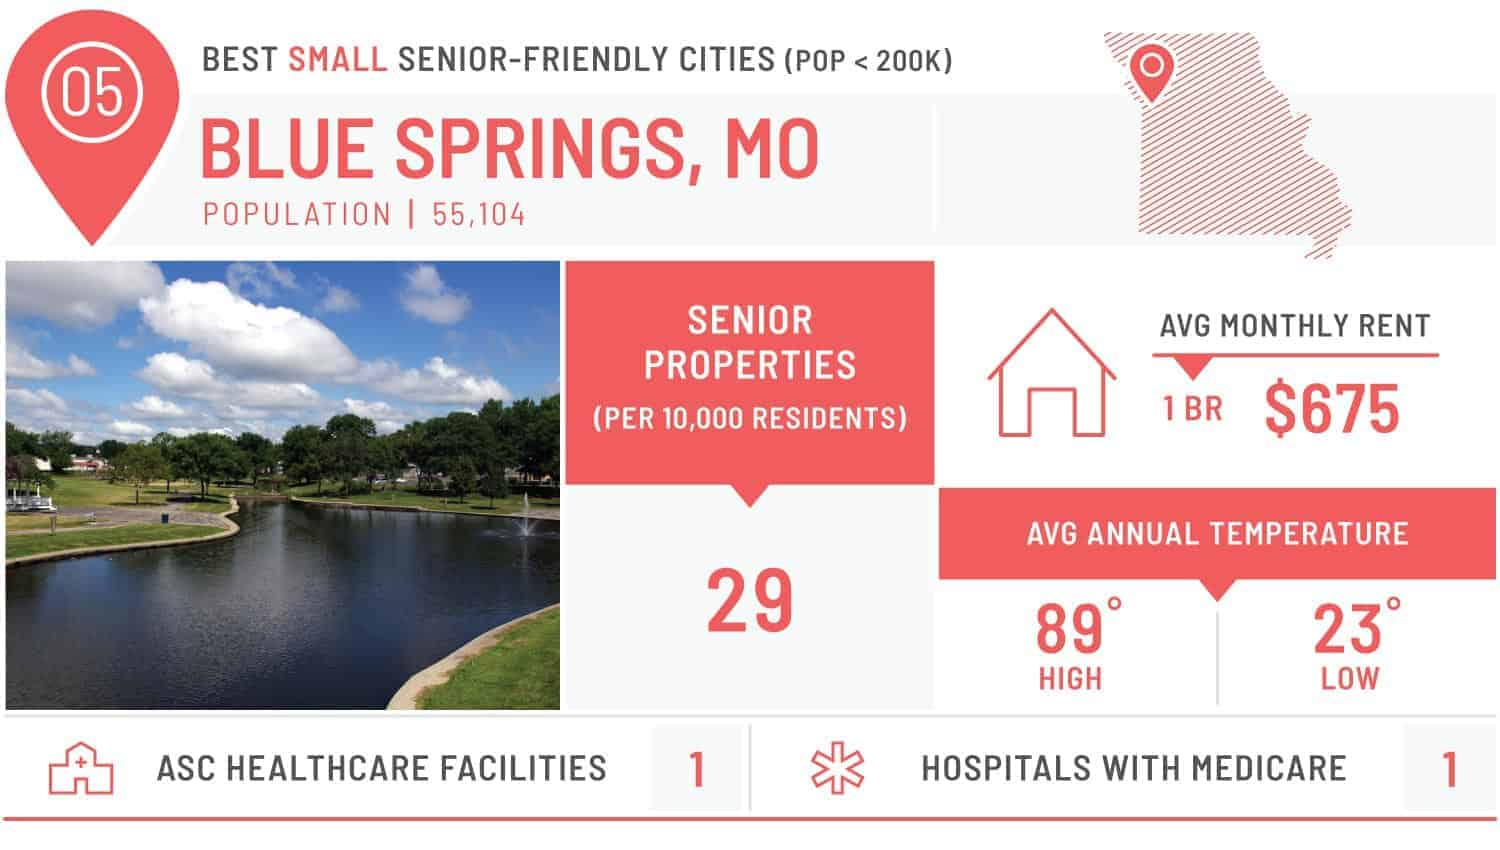 visiual of the best small city for seniors - blue springs